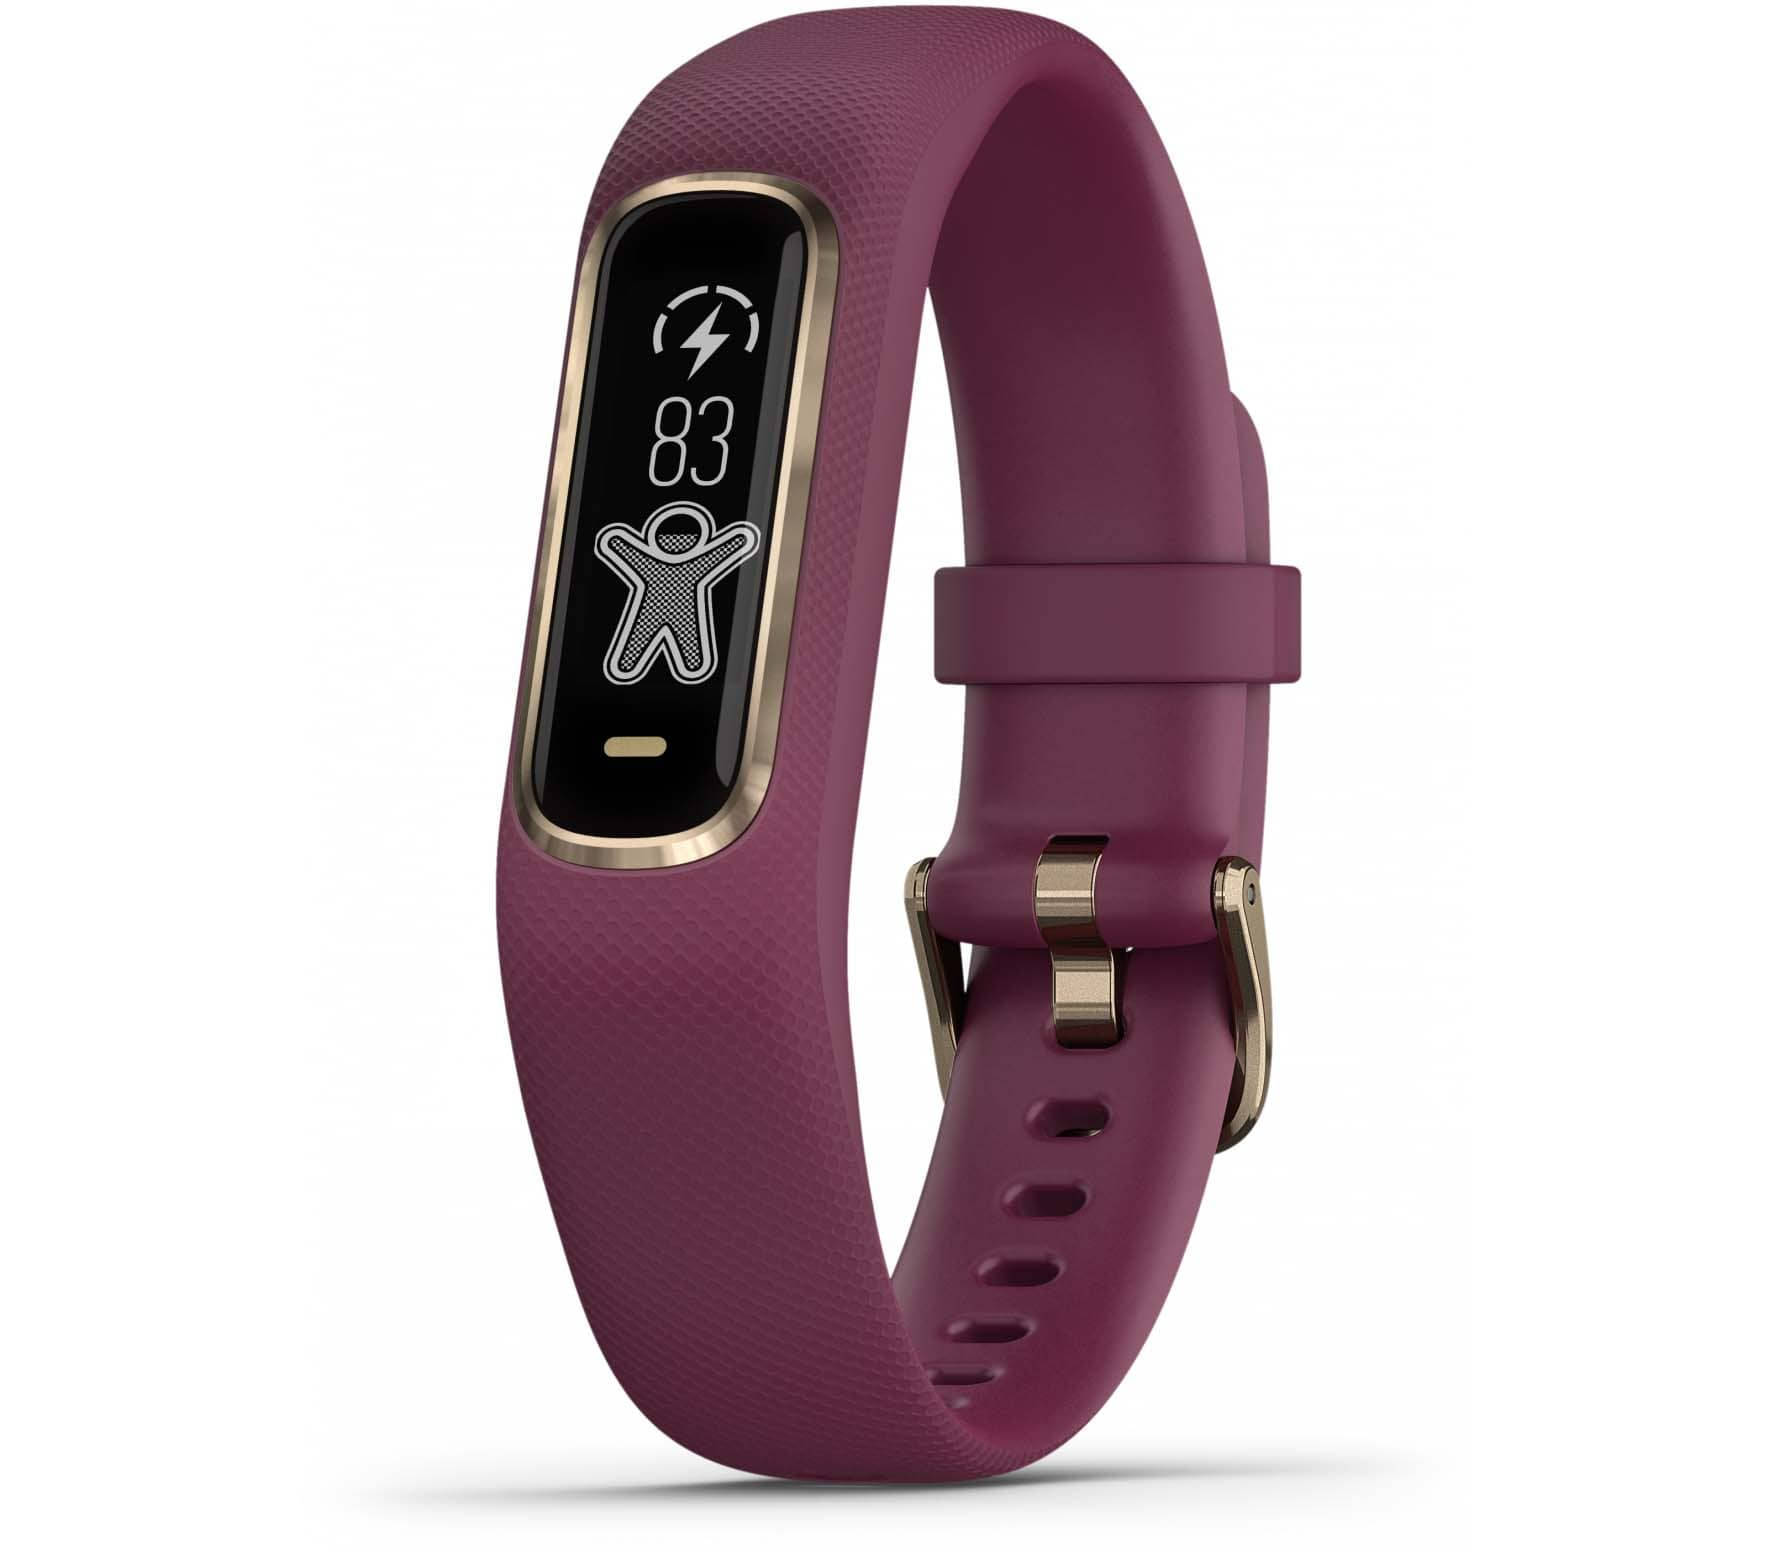 Garmin - vivosmart 4 Fitness bracelet (red)